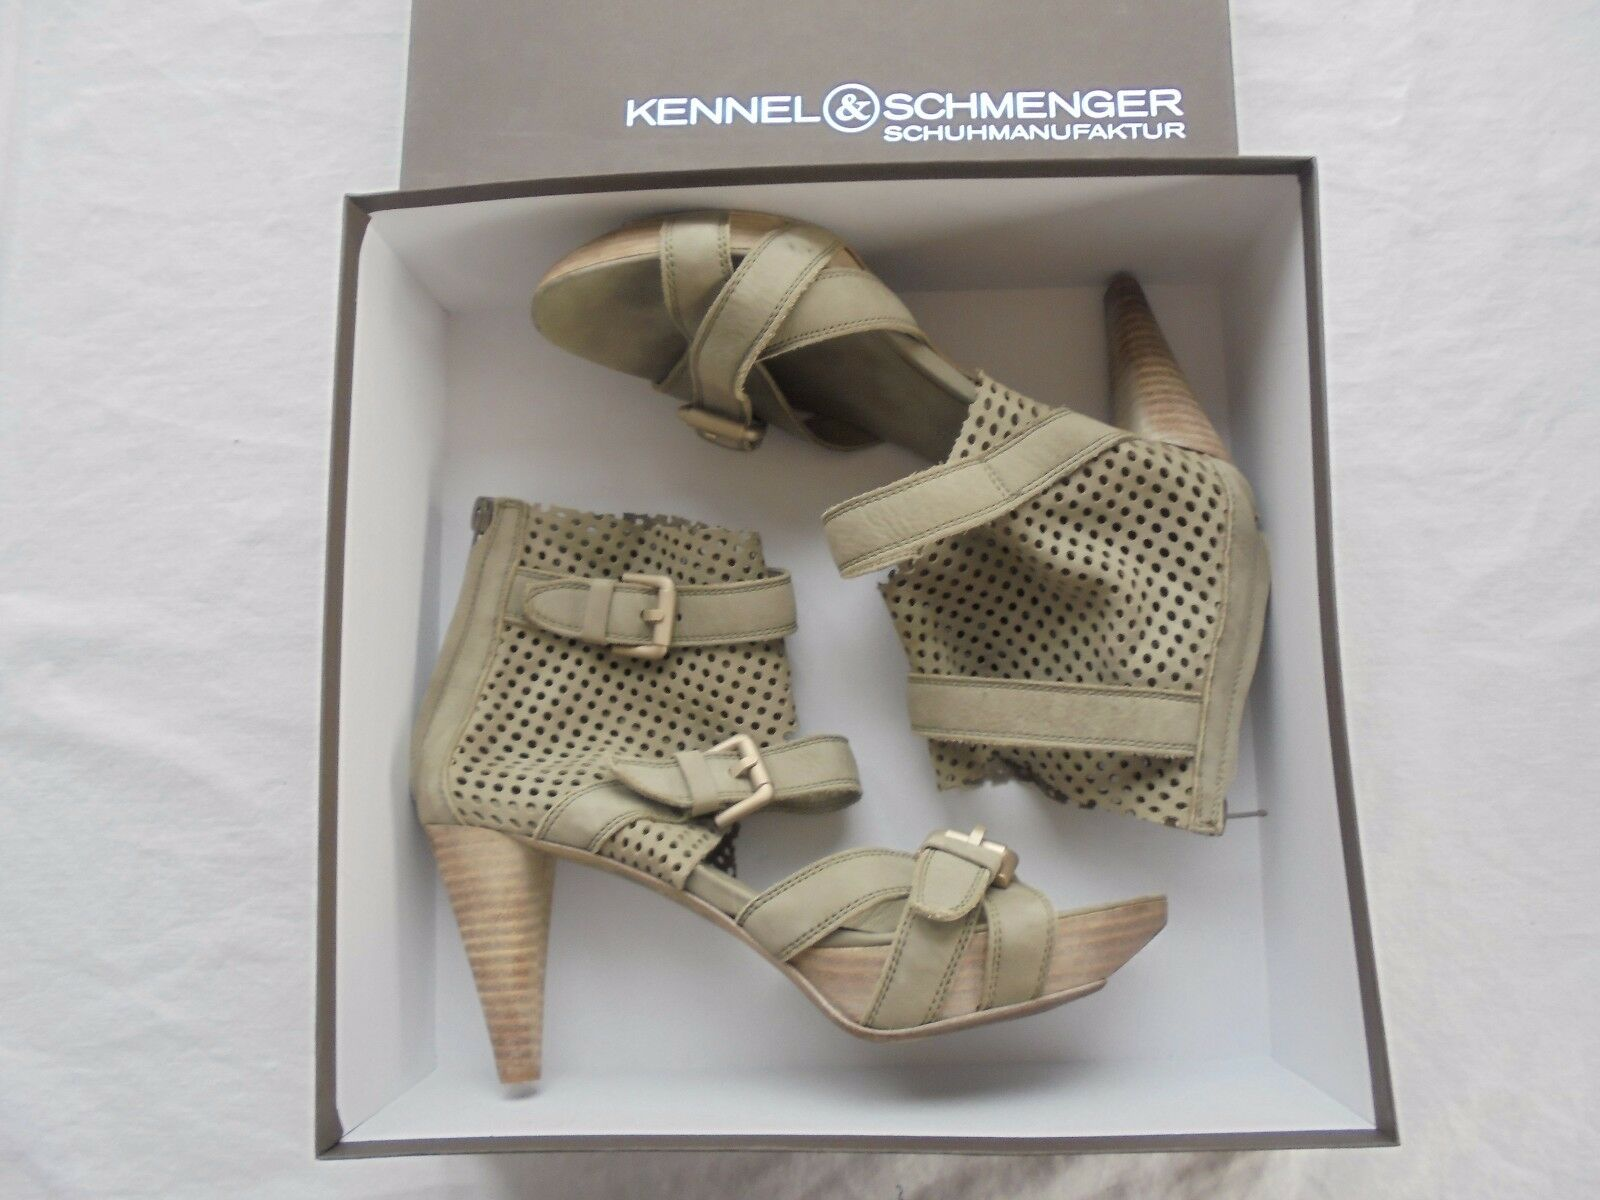 KENNEL & SCHMENGER Leder Taupe High Heels NP  TOP + OVP K&S Pumps Schuhe 39